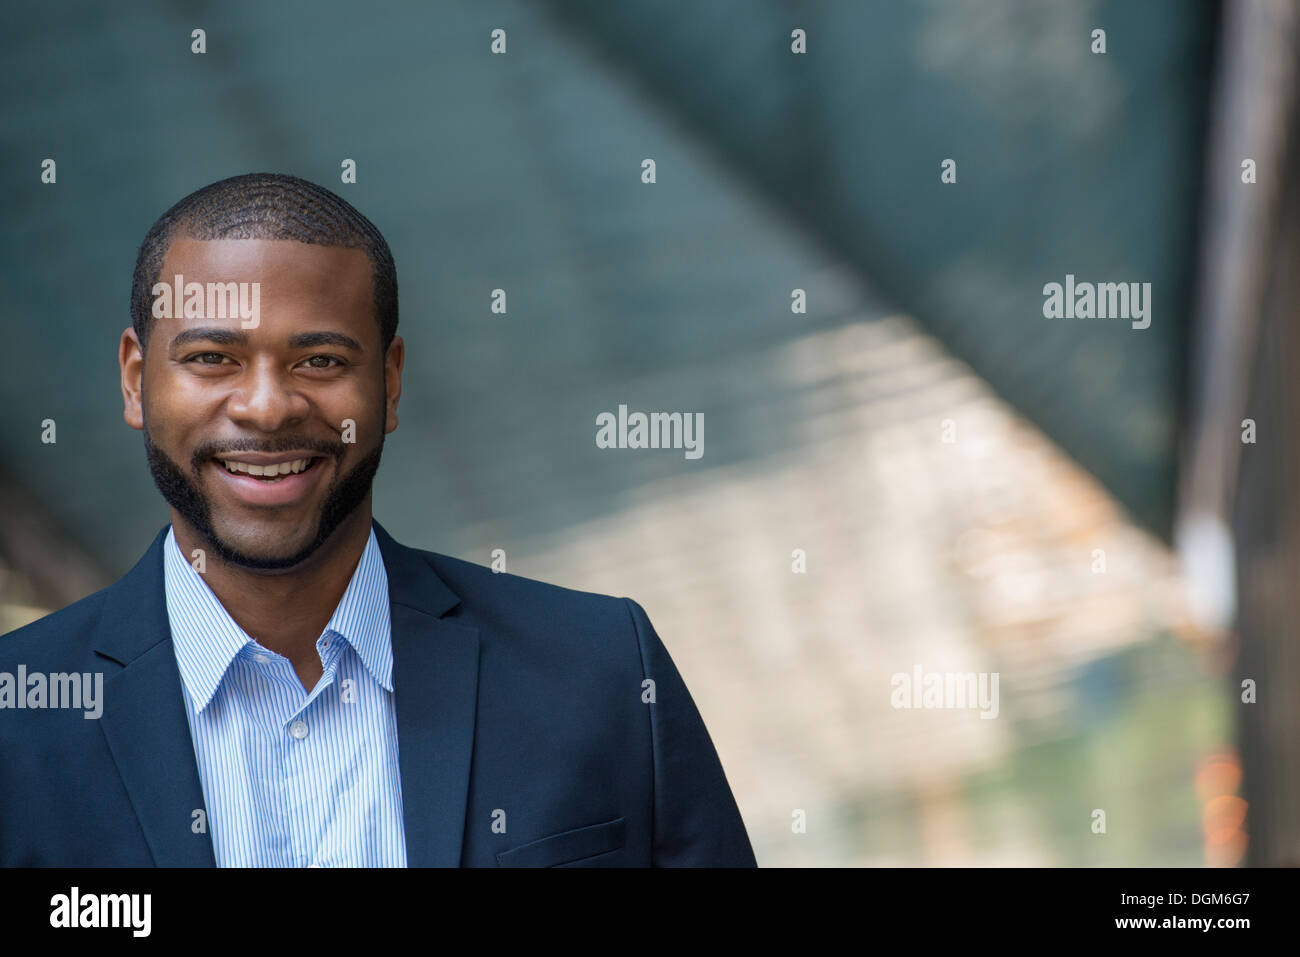 Summer. A man in a blue jacket and open necked shirt. Smiling. Stock Photo